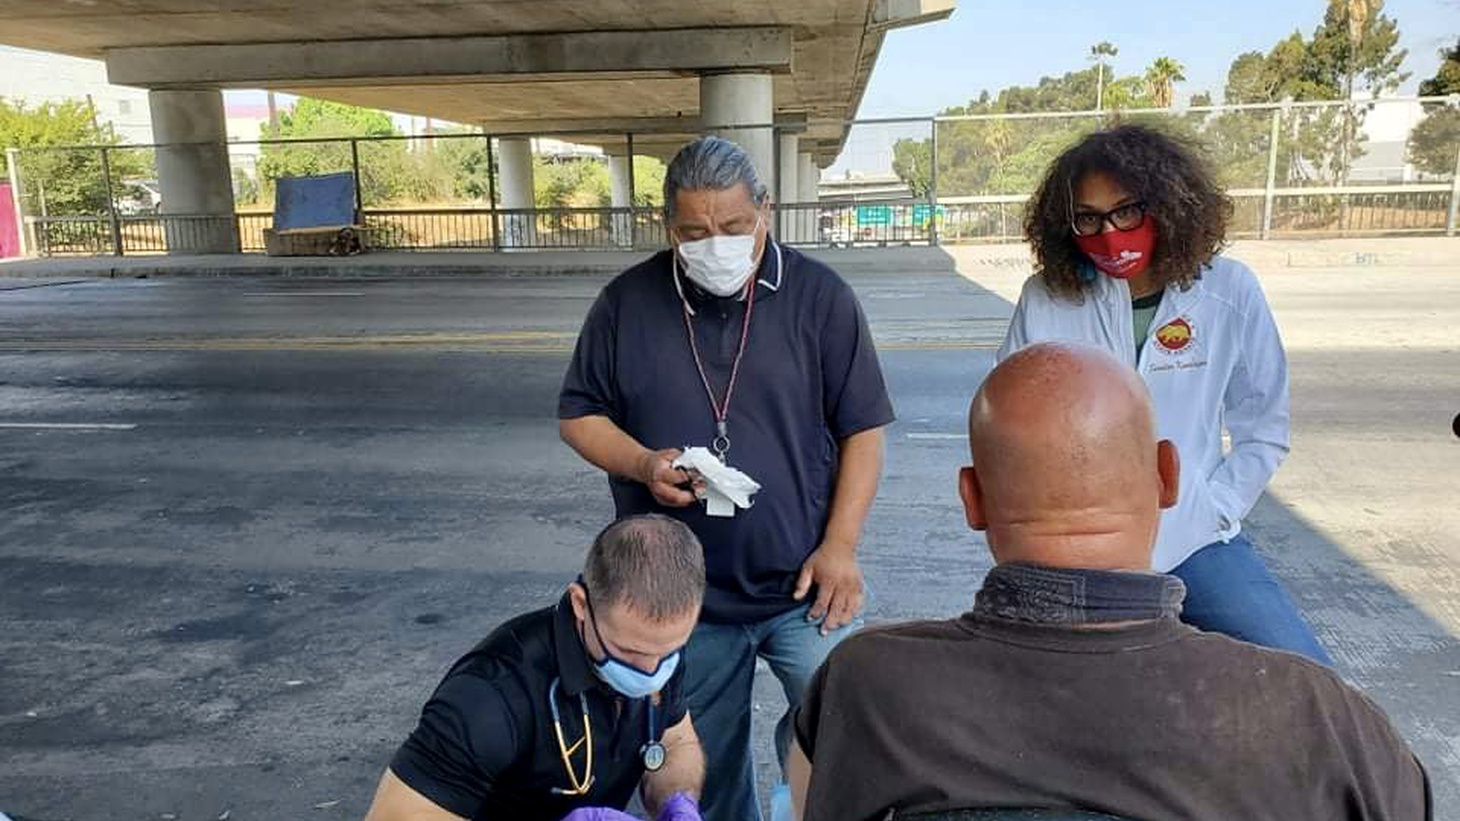 Physician assistant Brett Feldman treats a man who lives in a tent overlooking a freeway in downtown Los Angeles. Joseph Becerra, a community health worker, and State Senator Sydney Kamlager watch.